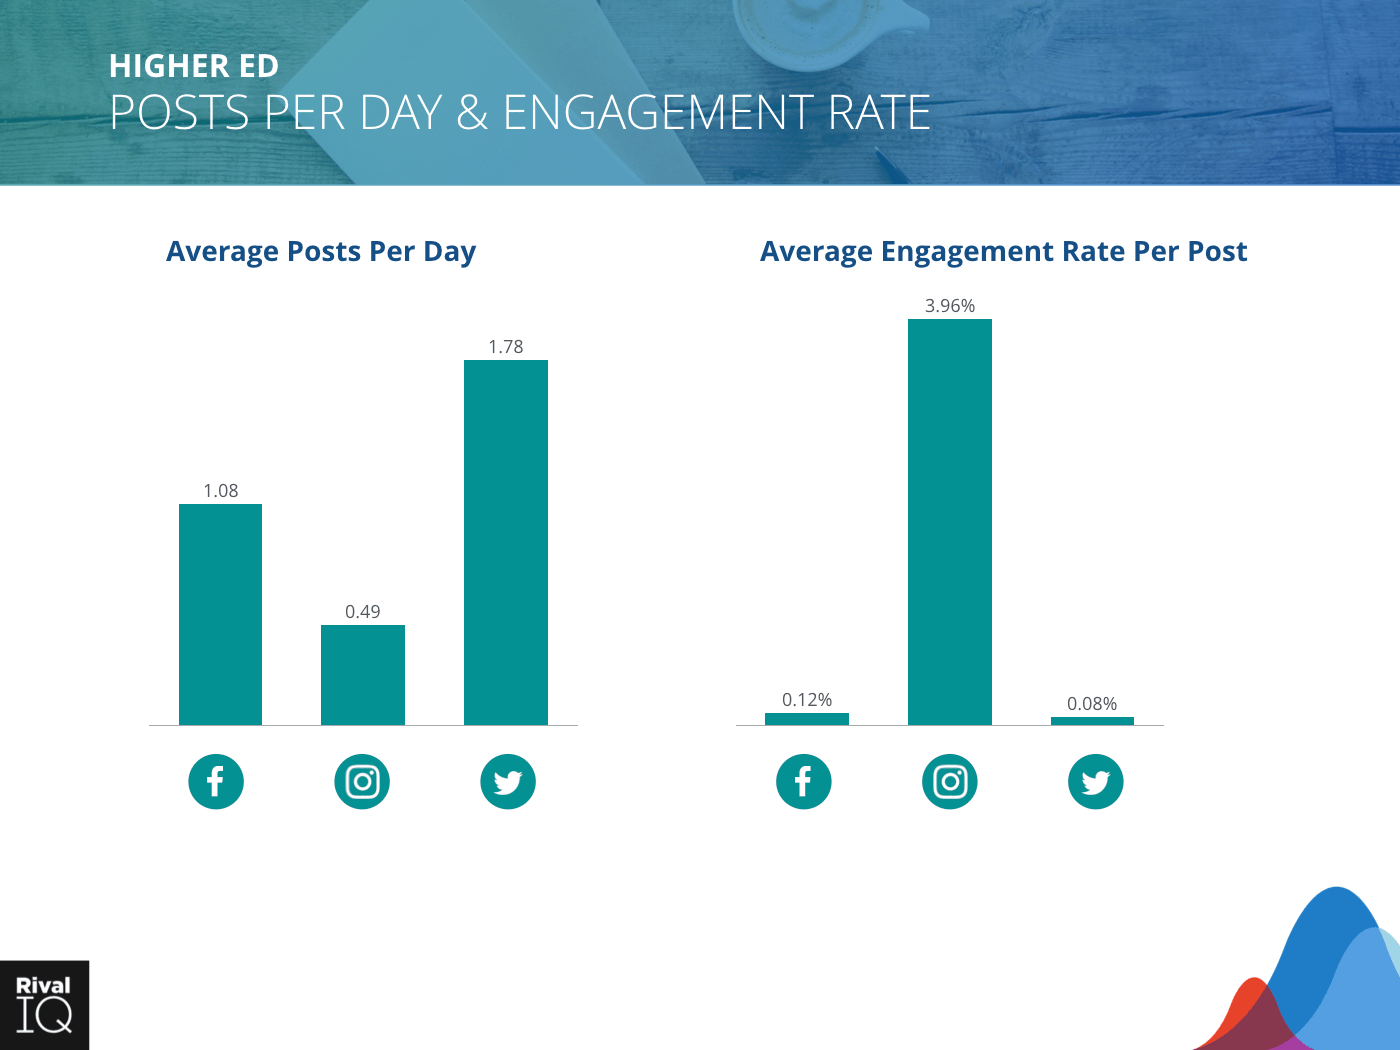 Higher Ed Industry: bar graph, average post per day and engagement rate, all channels.